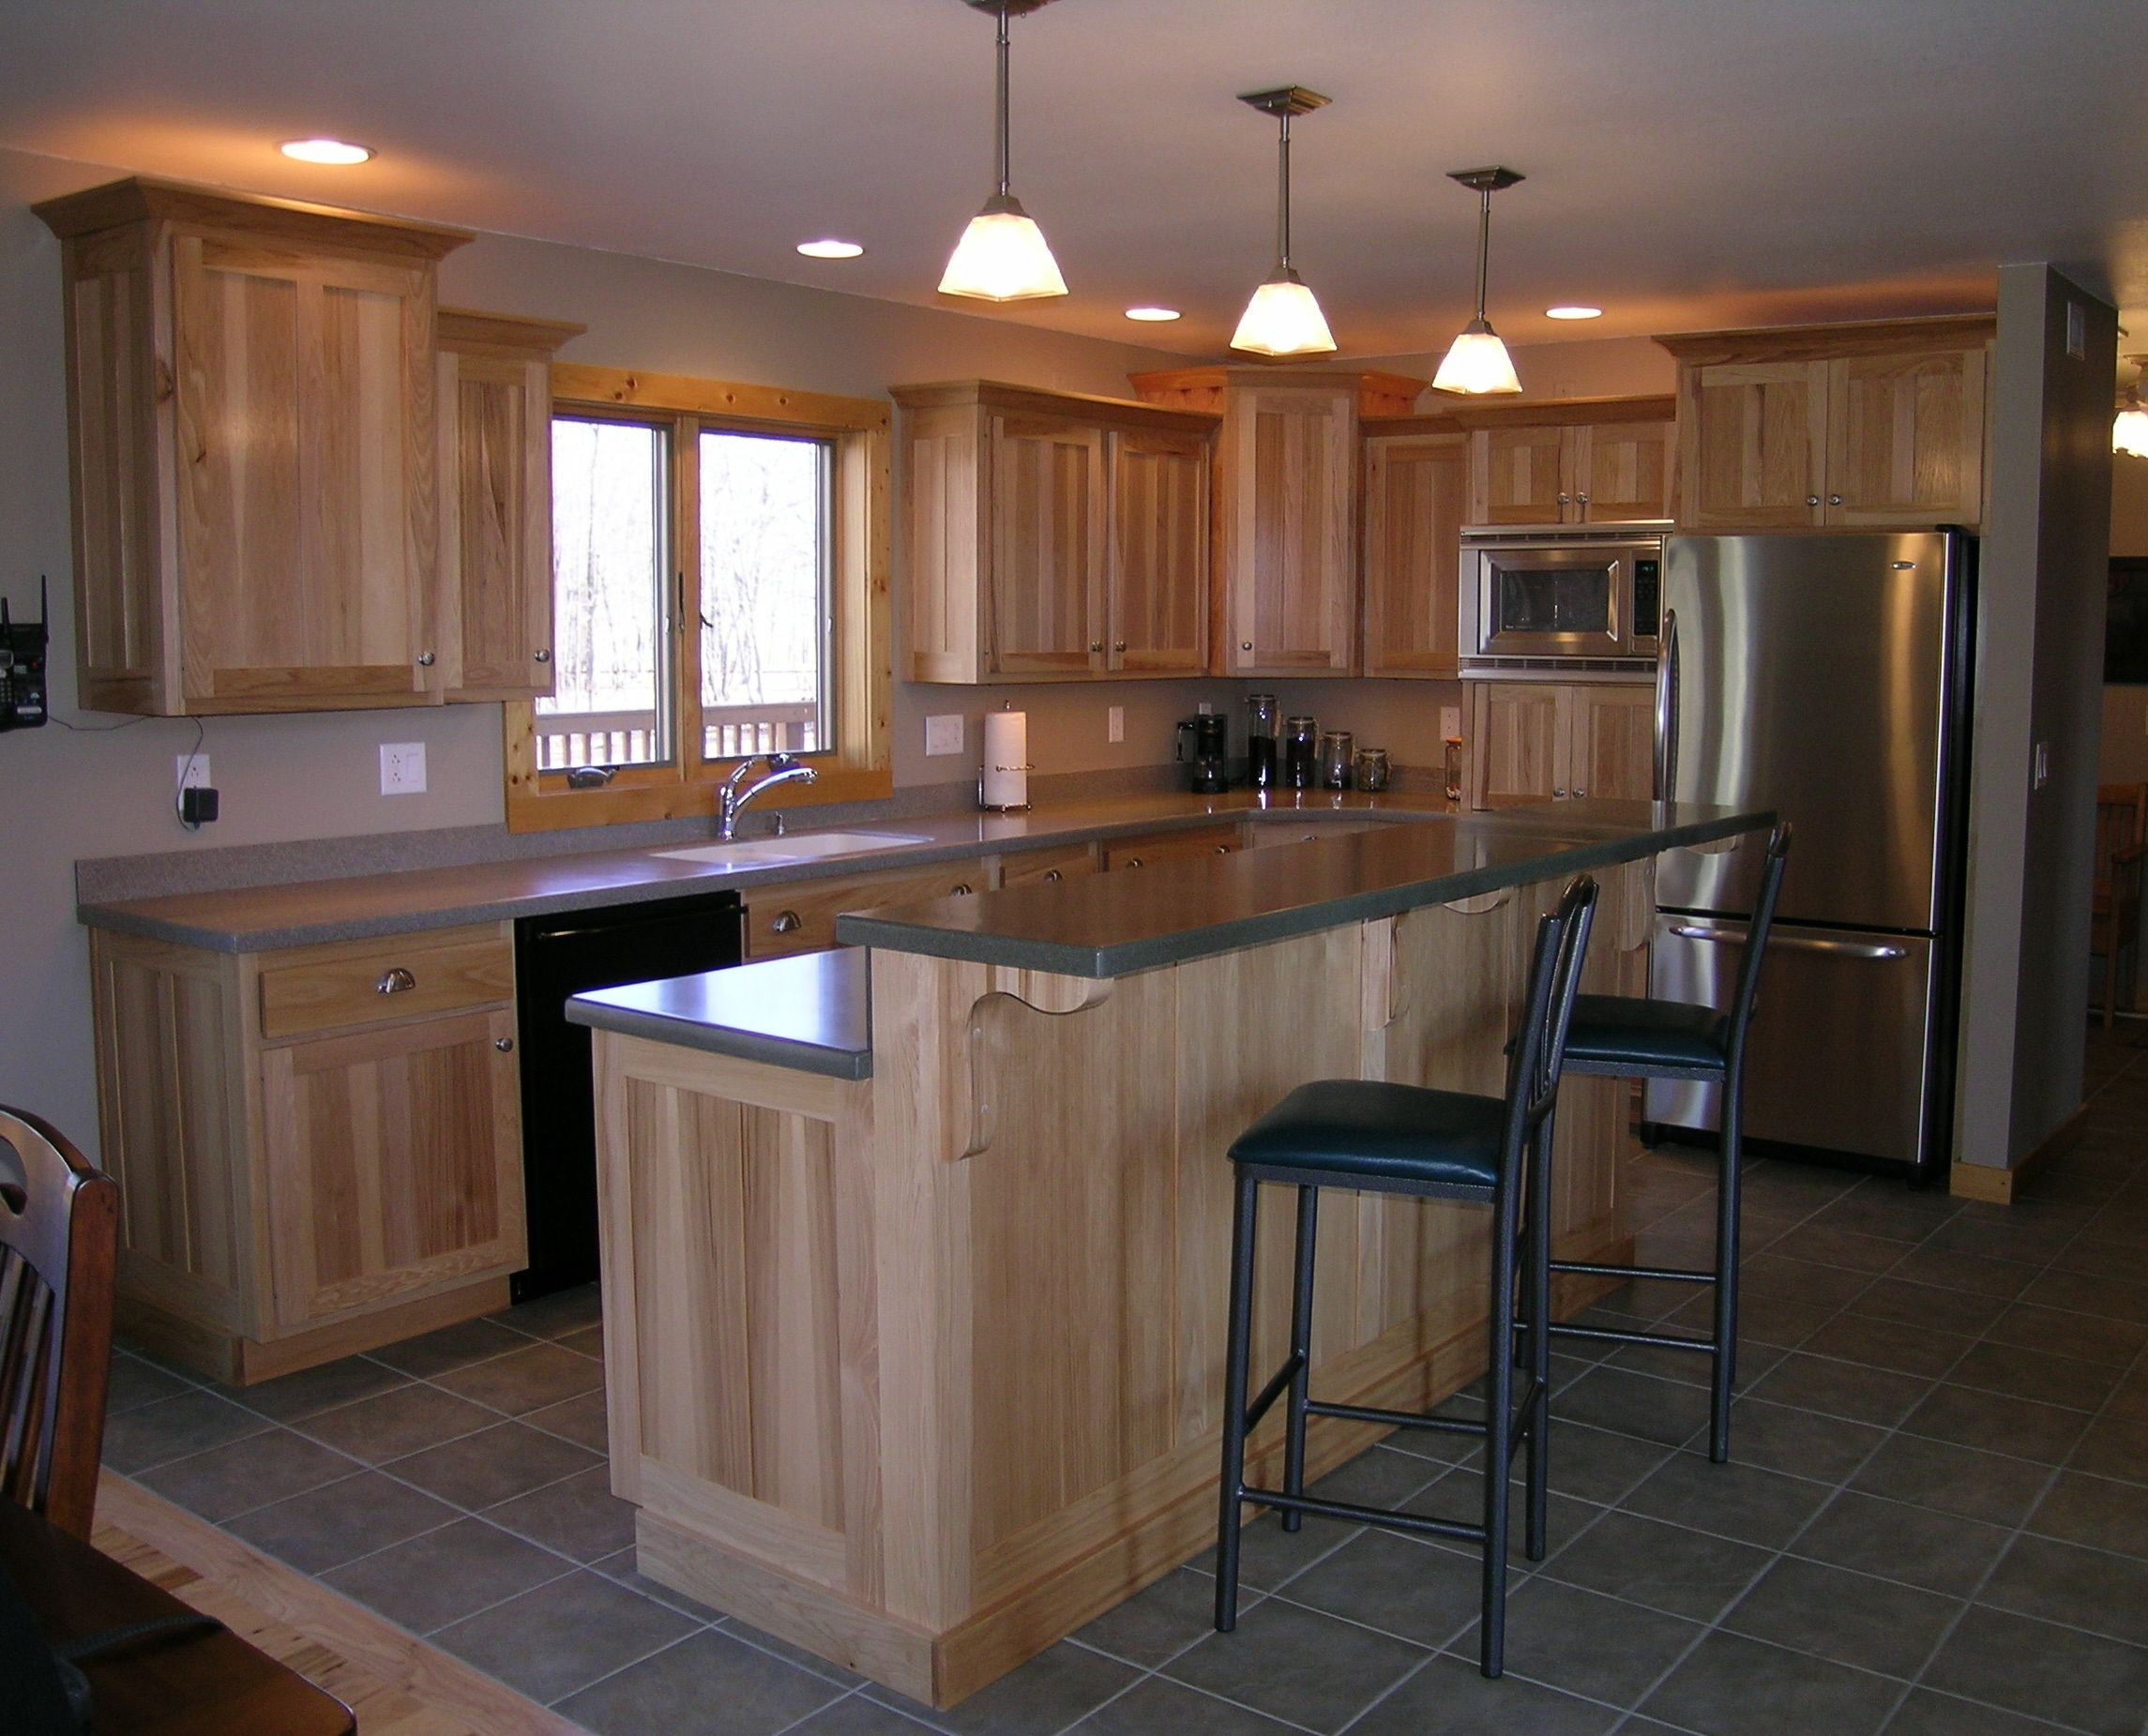 Hickory Cabinetry By Forever Cabinets By Kendrick. Www.forevercabinets.com